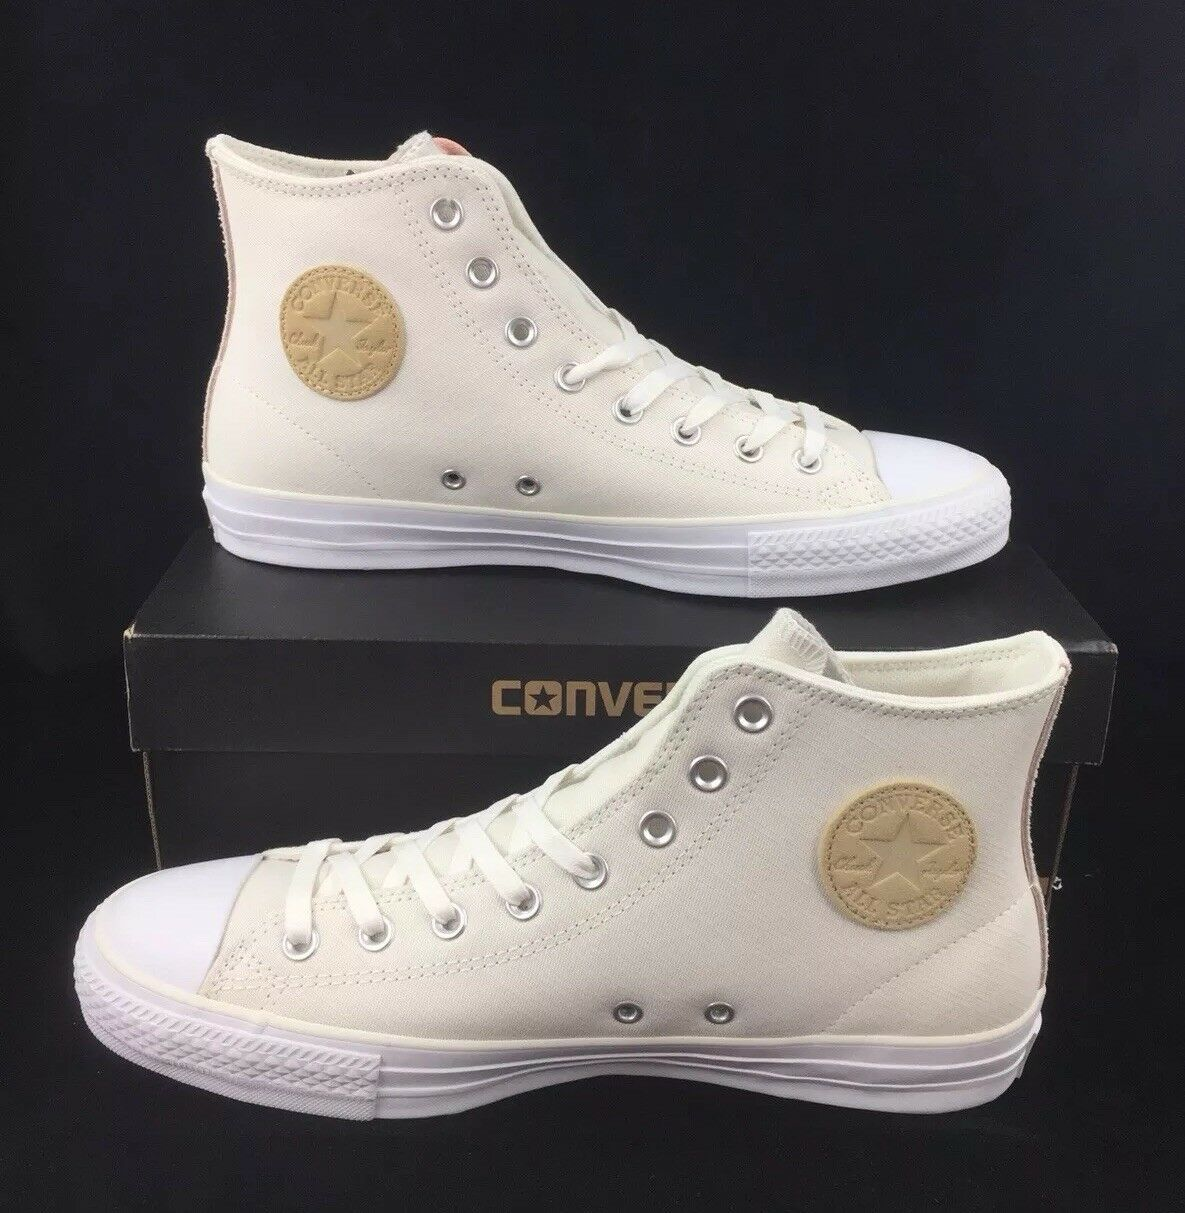 NEW Converse Chuck Taylor All Star Pro Hi Egret Pink Fawn shoes Sneakers Mens 10